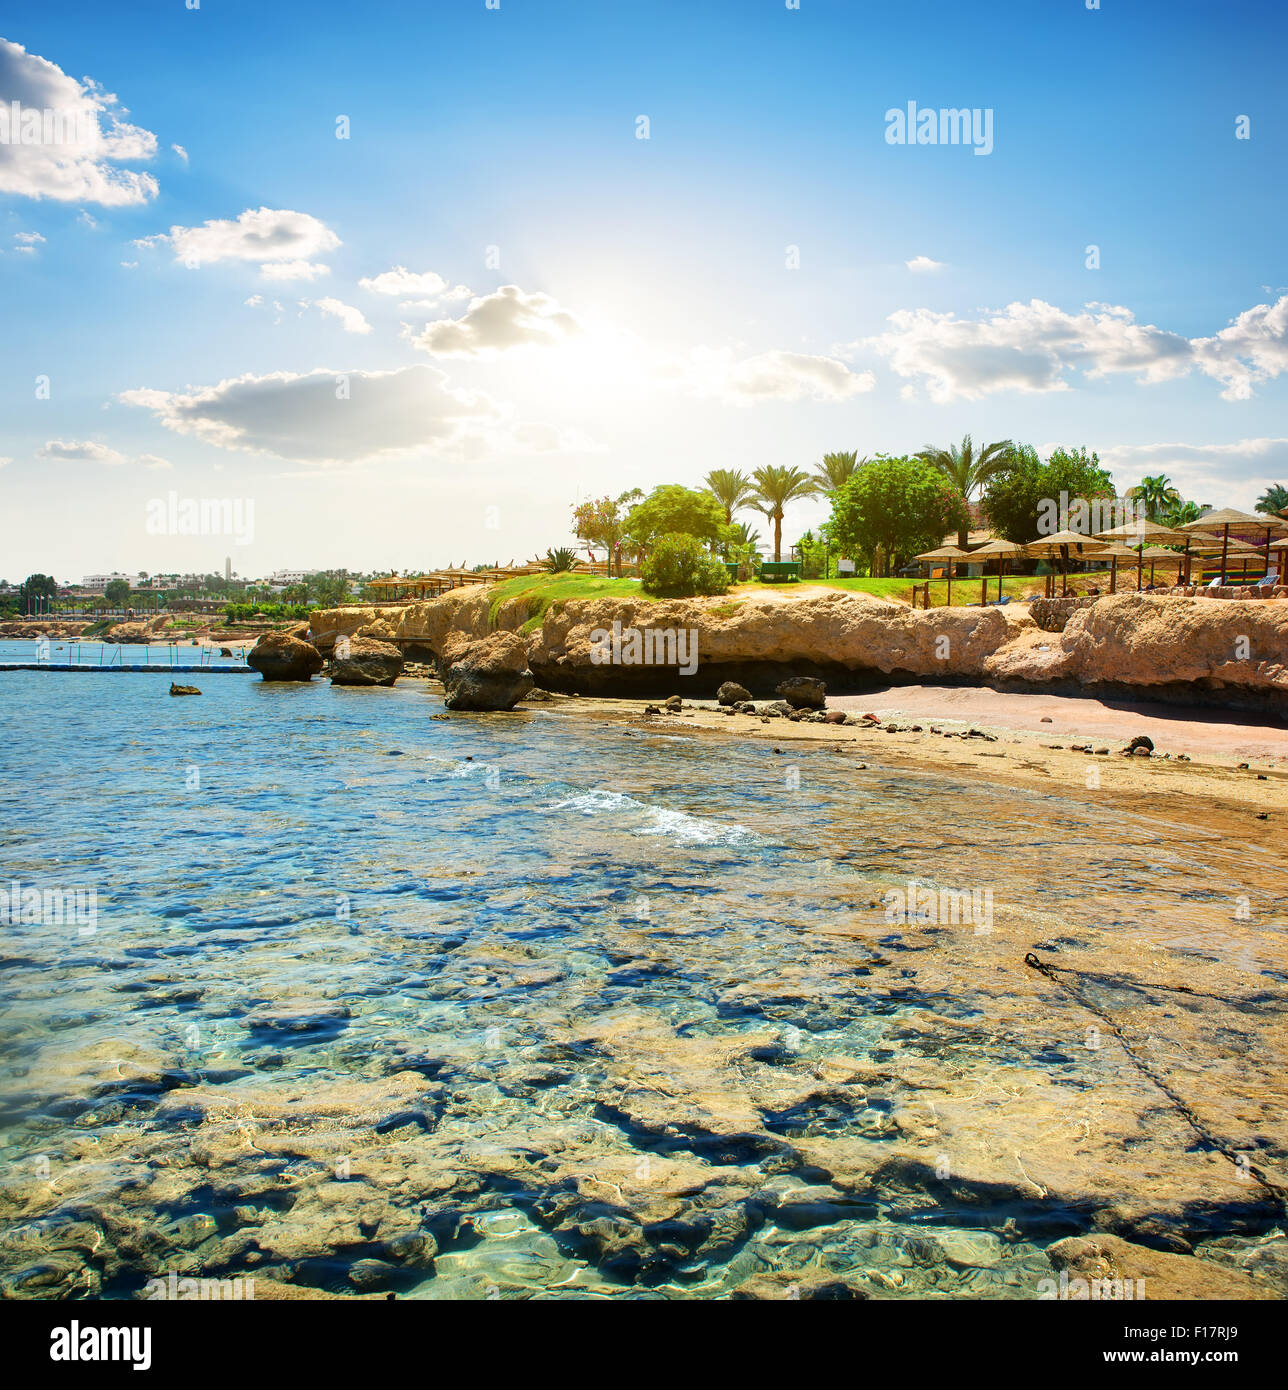 Coral Reefs On The Beach Near Hotel Stock Photo, Royalty